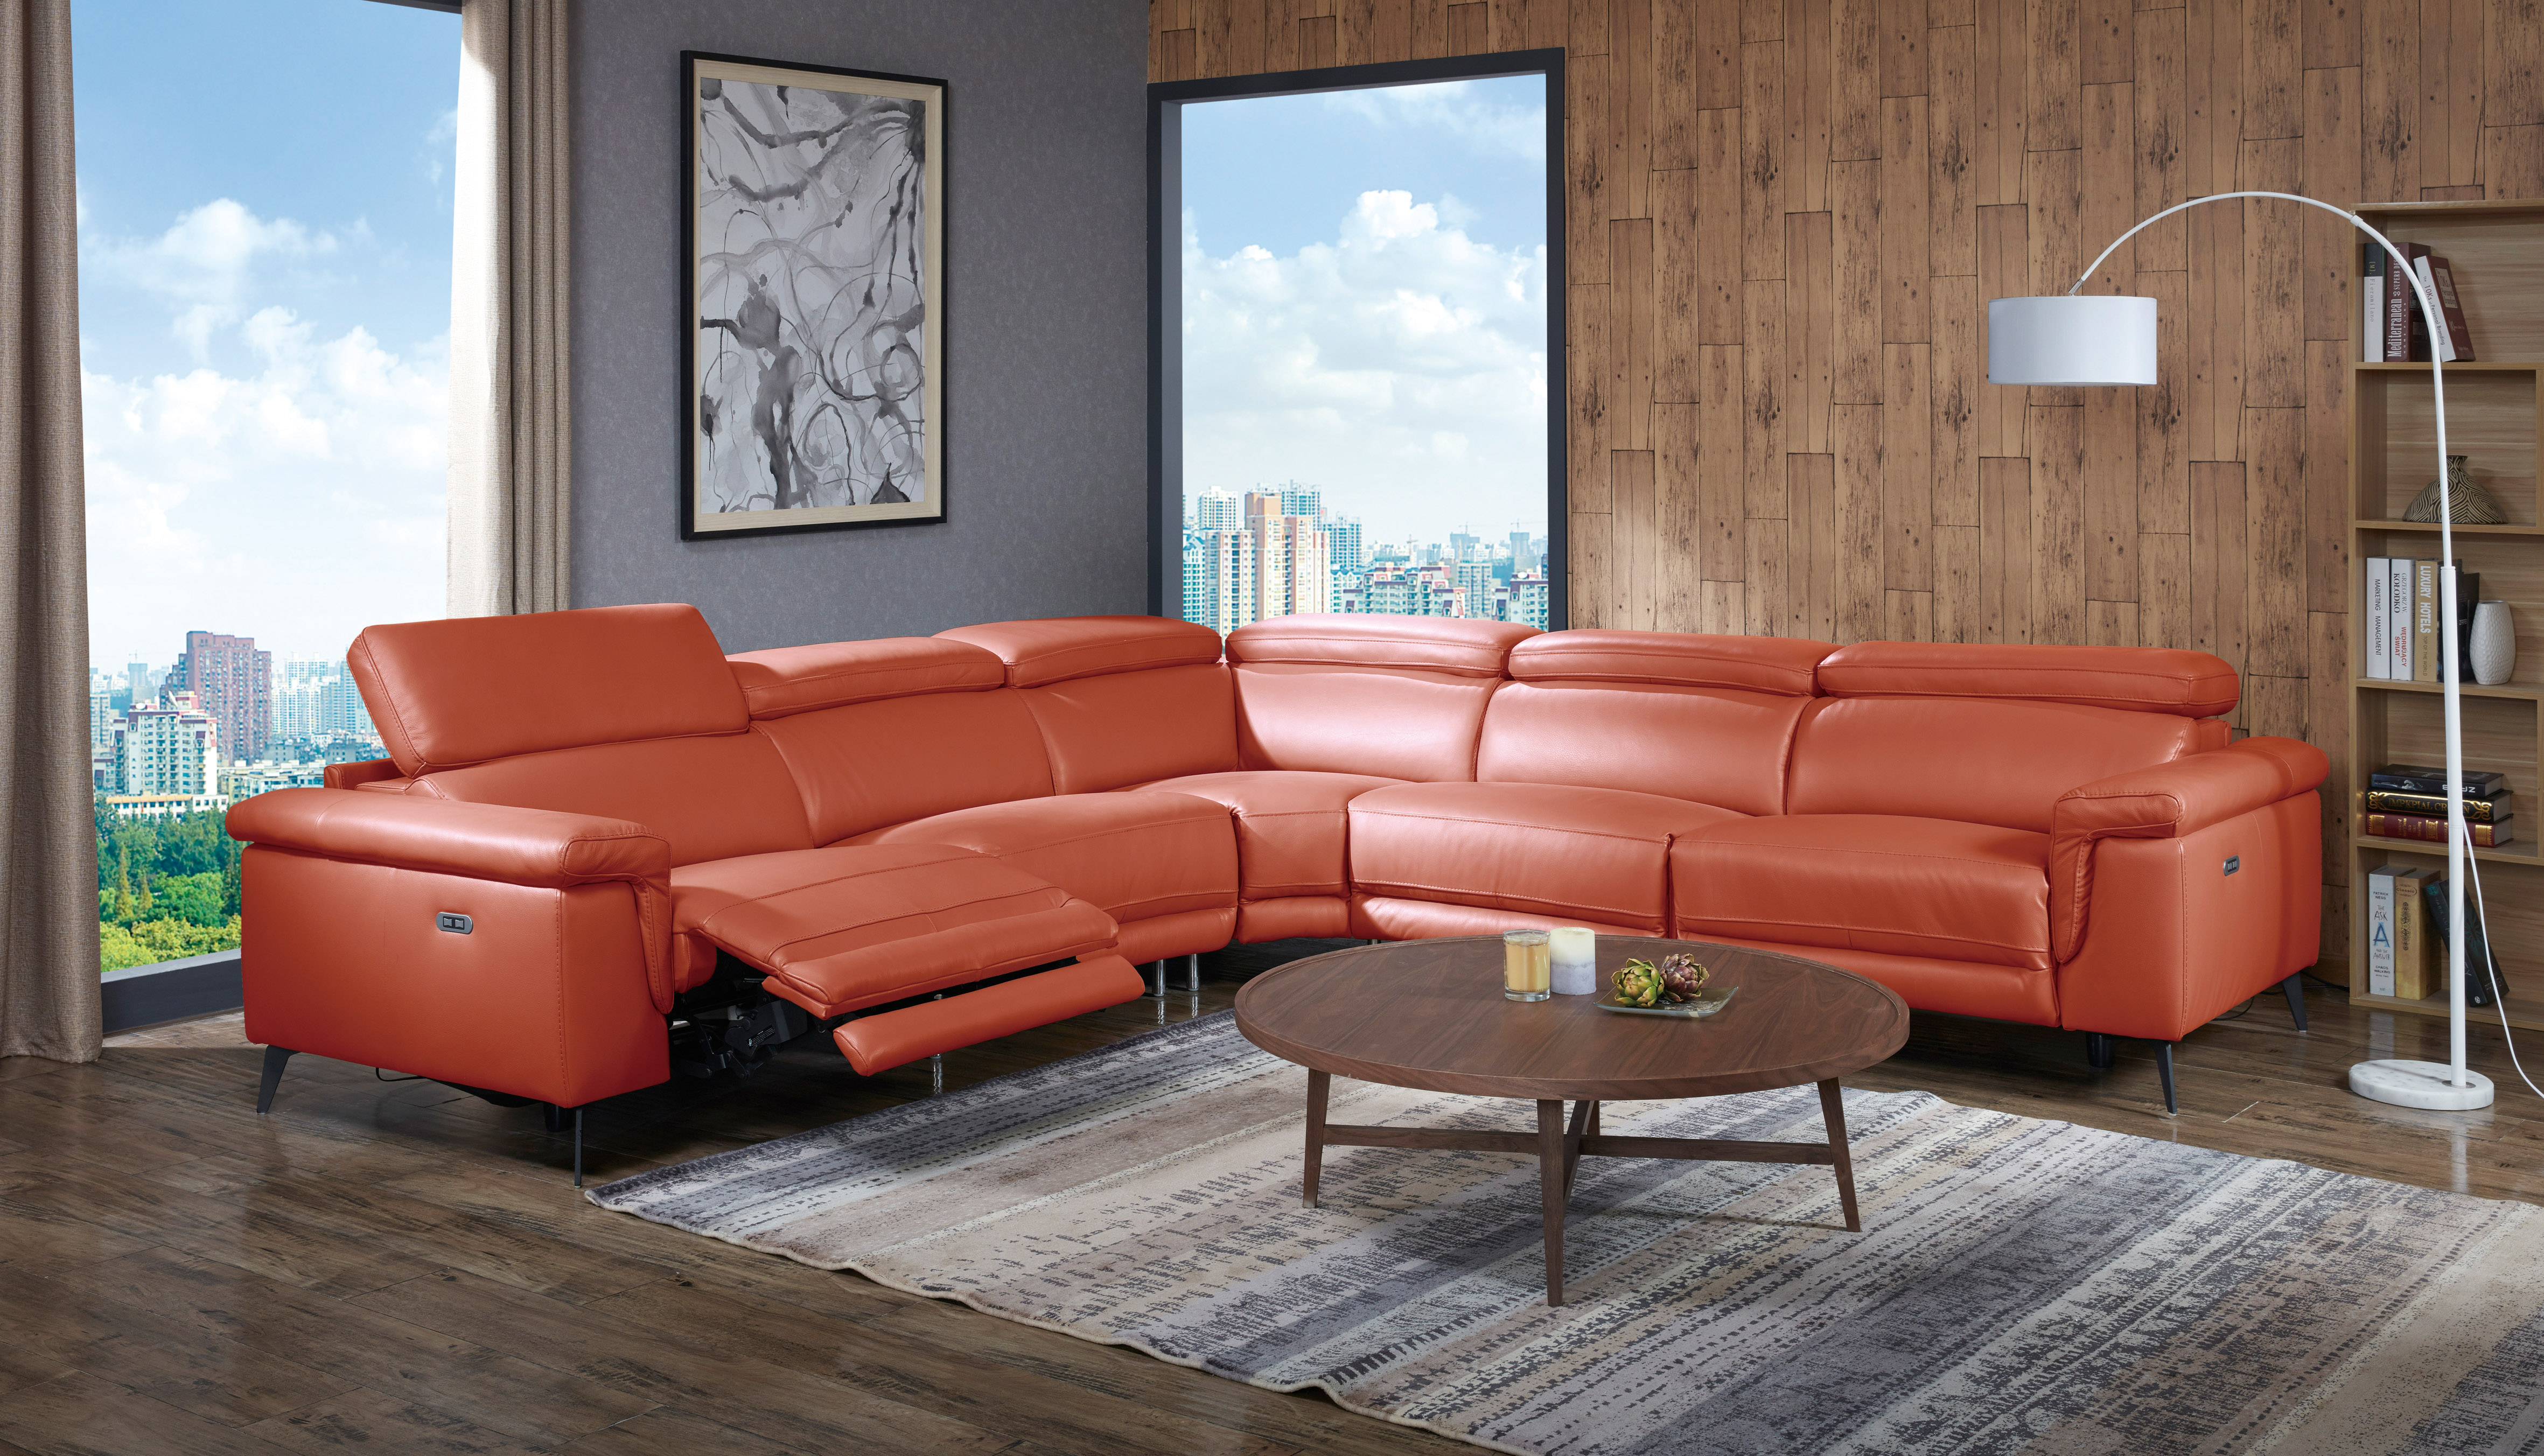 Elite Covered in Leather Sectional Beverly Hills Hendrix